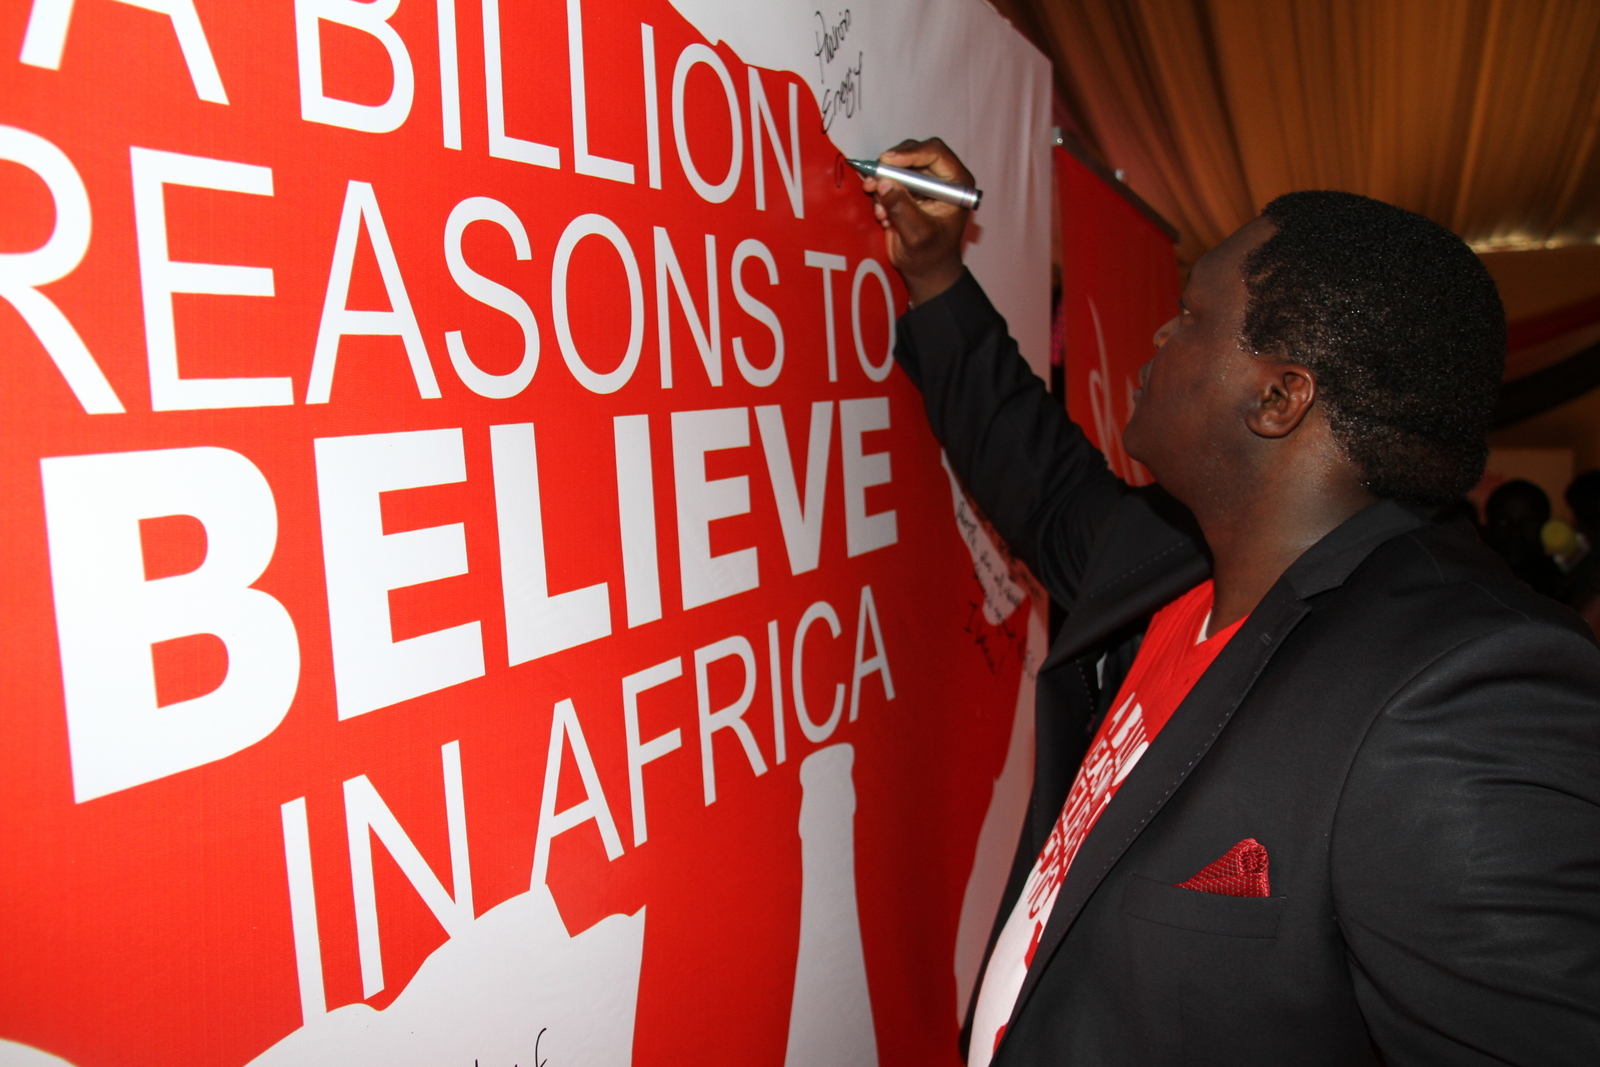 Coke Billion Reasons Campaign Launch